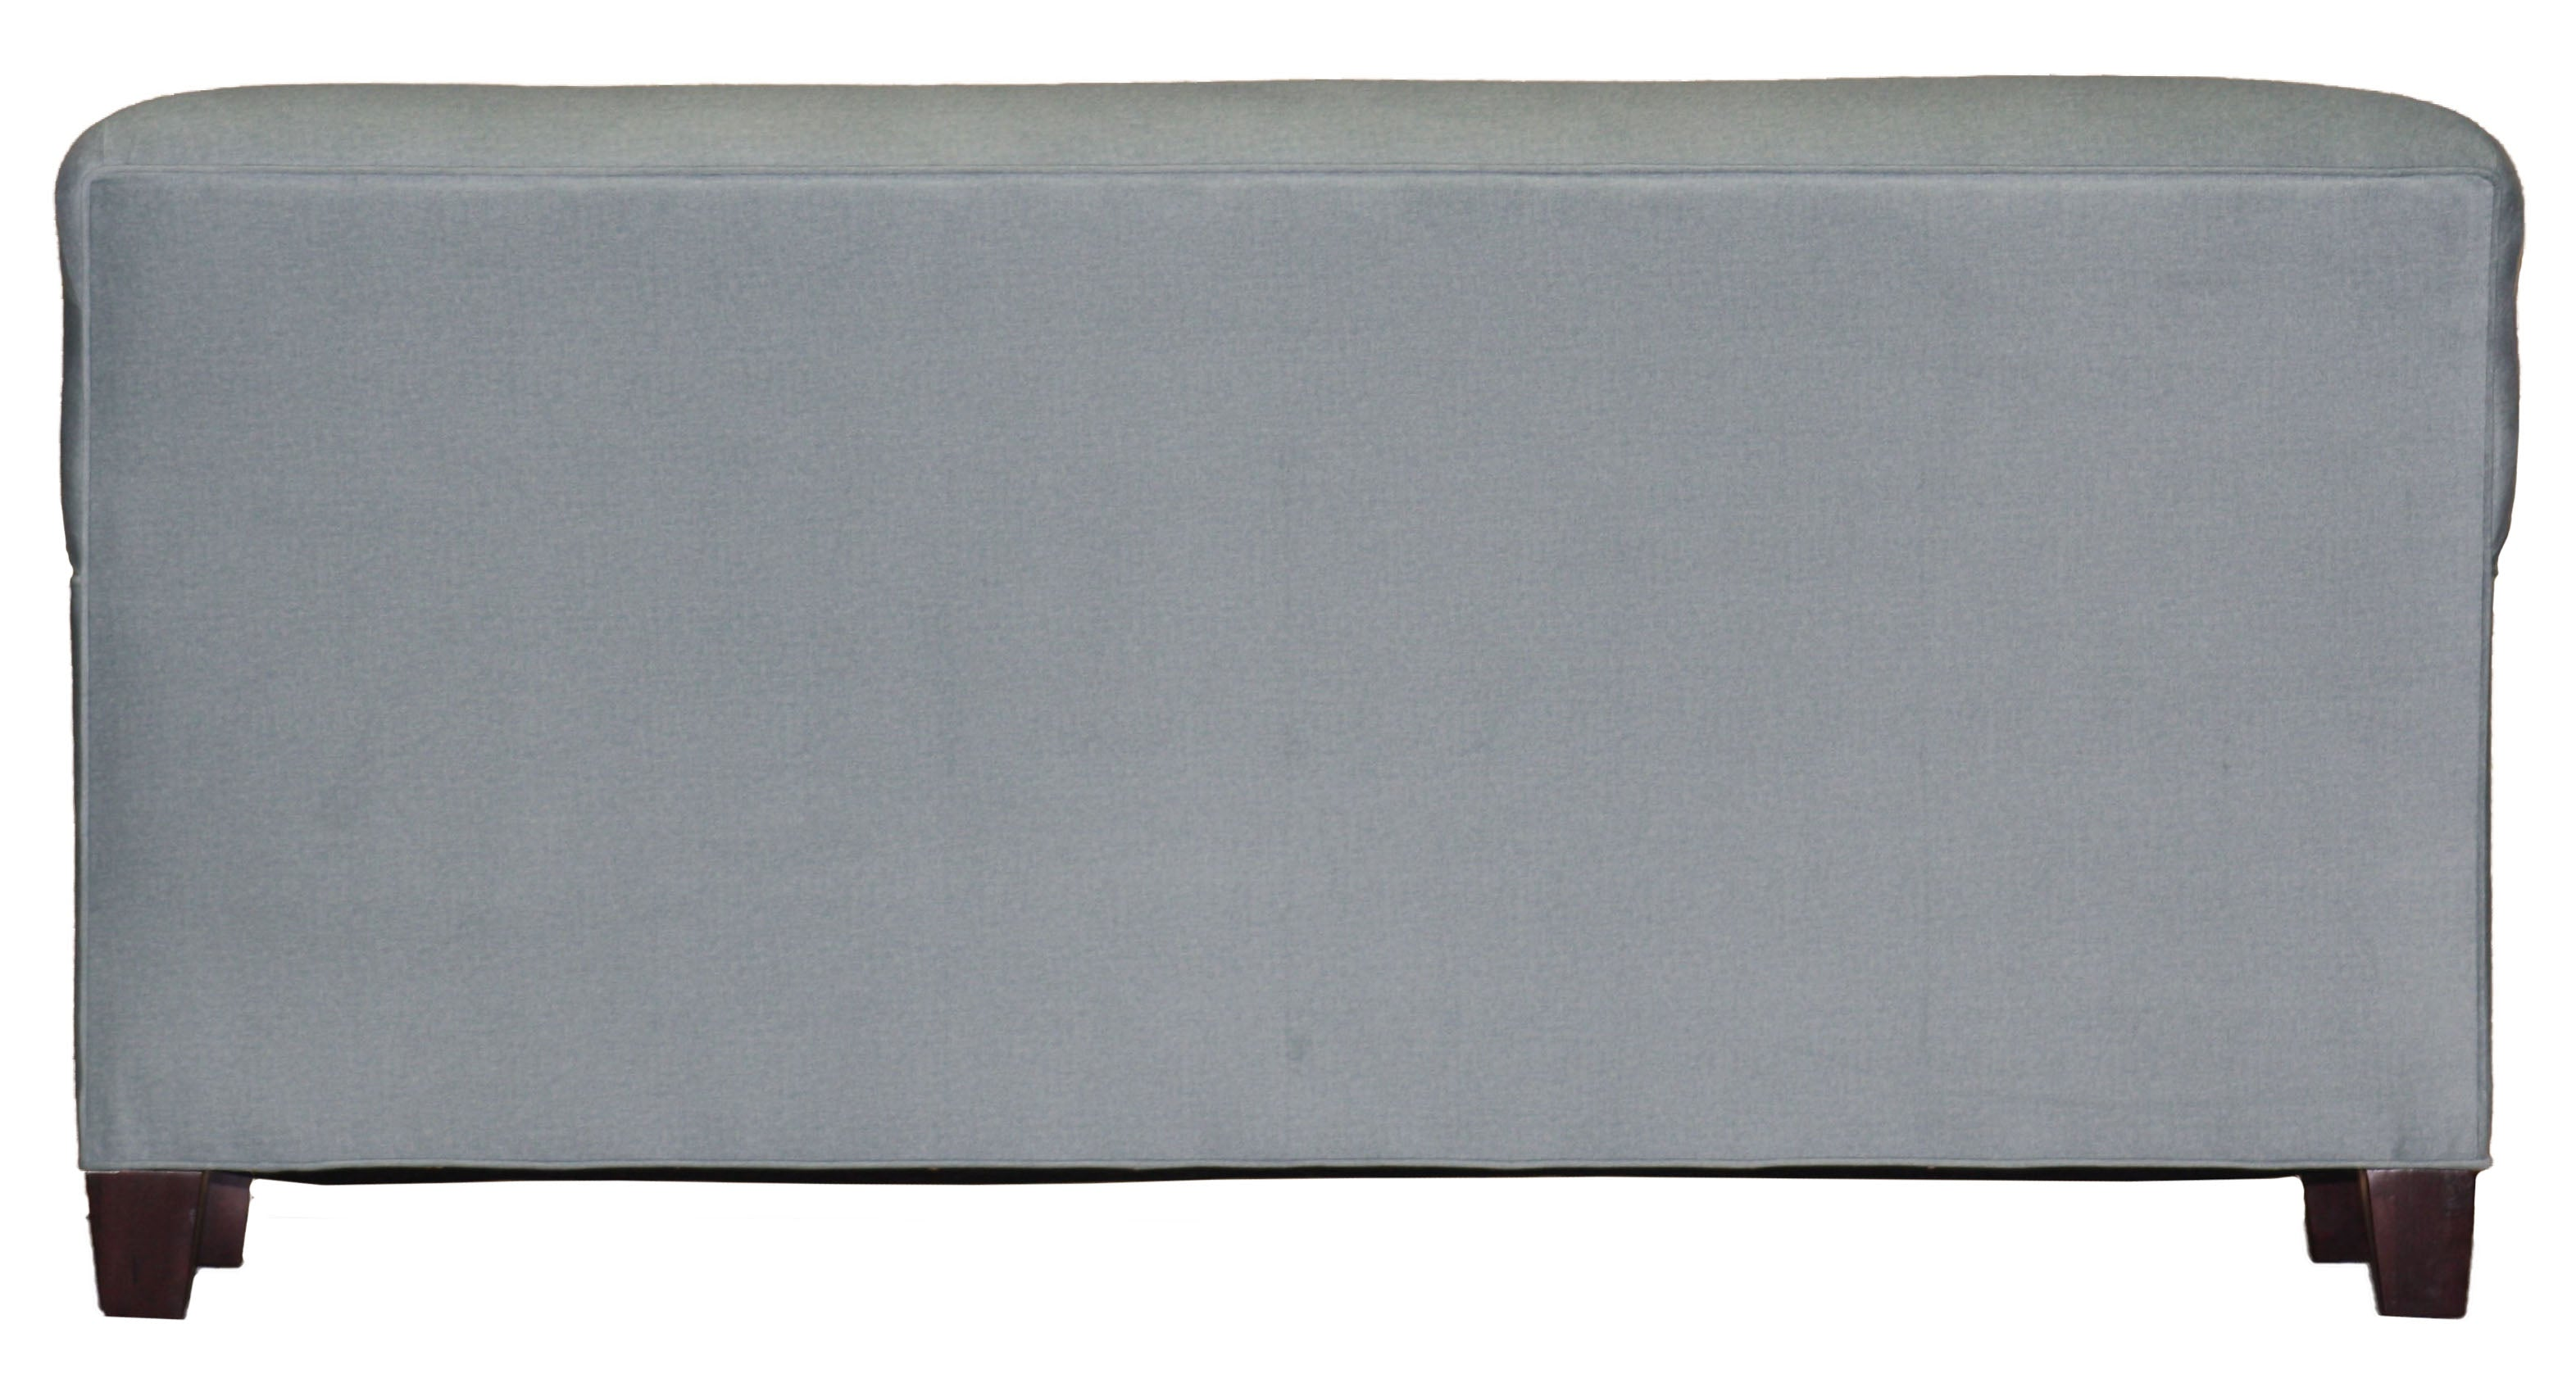 Super Temple Tailor Made English Arm 2 Cushion 71 Sofa From Cjindustries Chair Design For Home Cjindustriesco